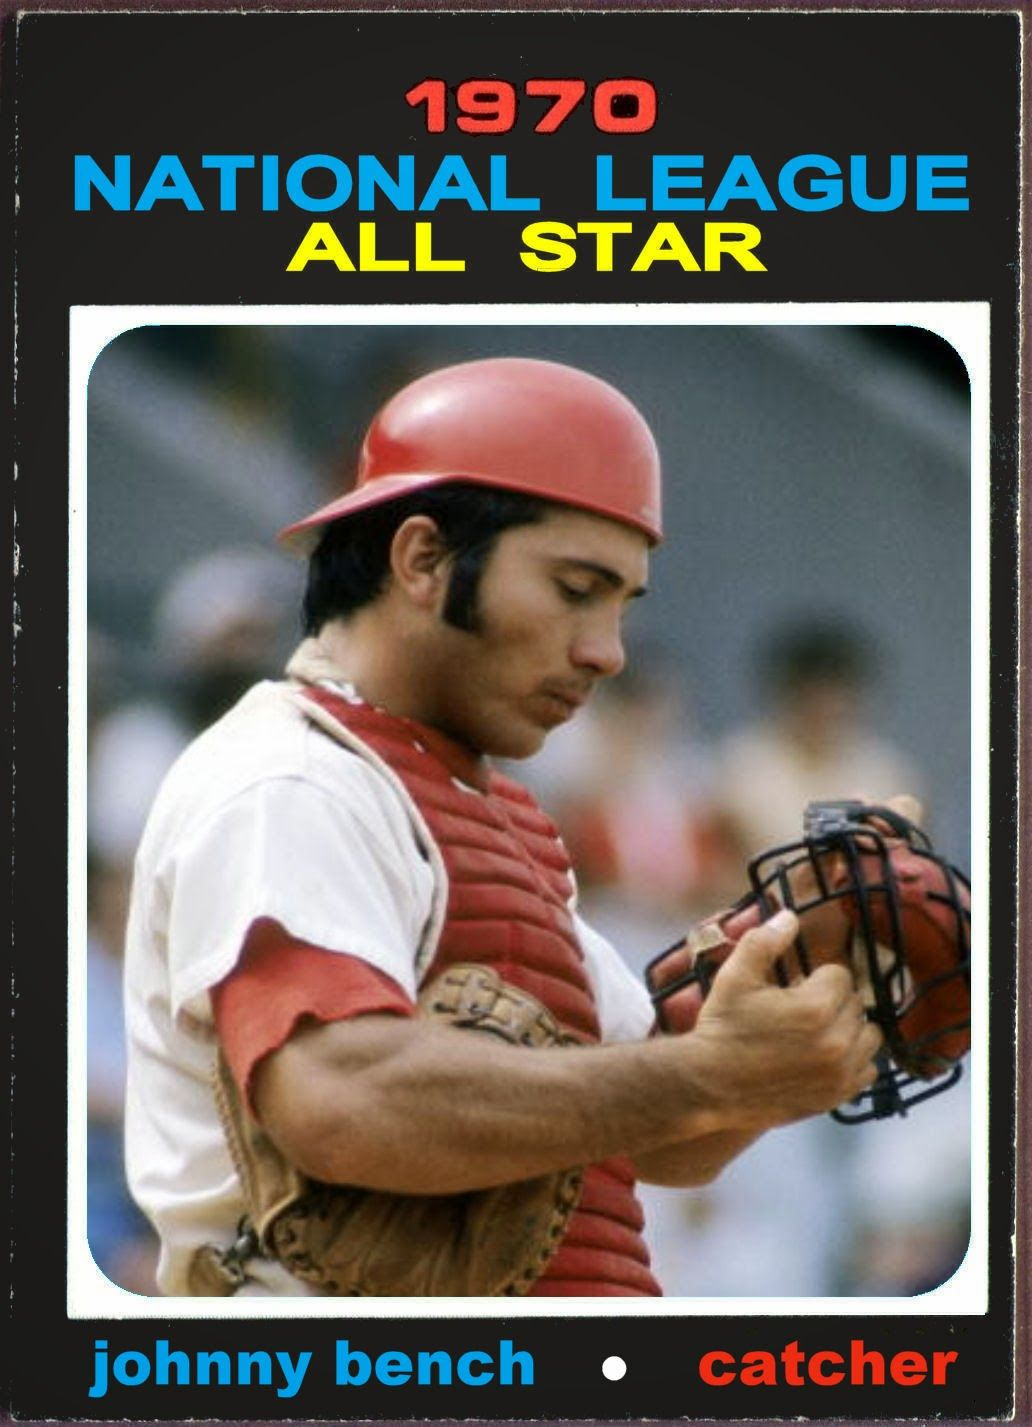 1971 topps all star cards national league battery